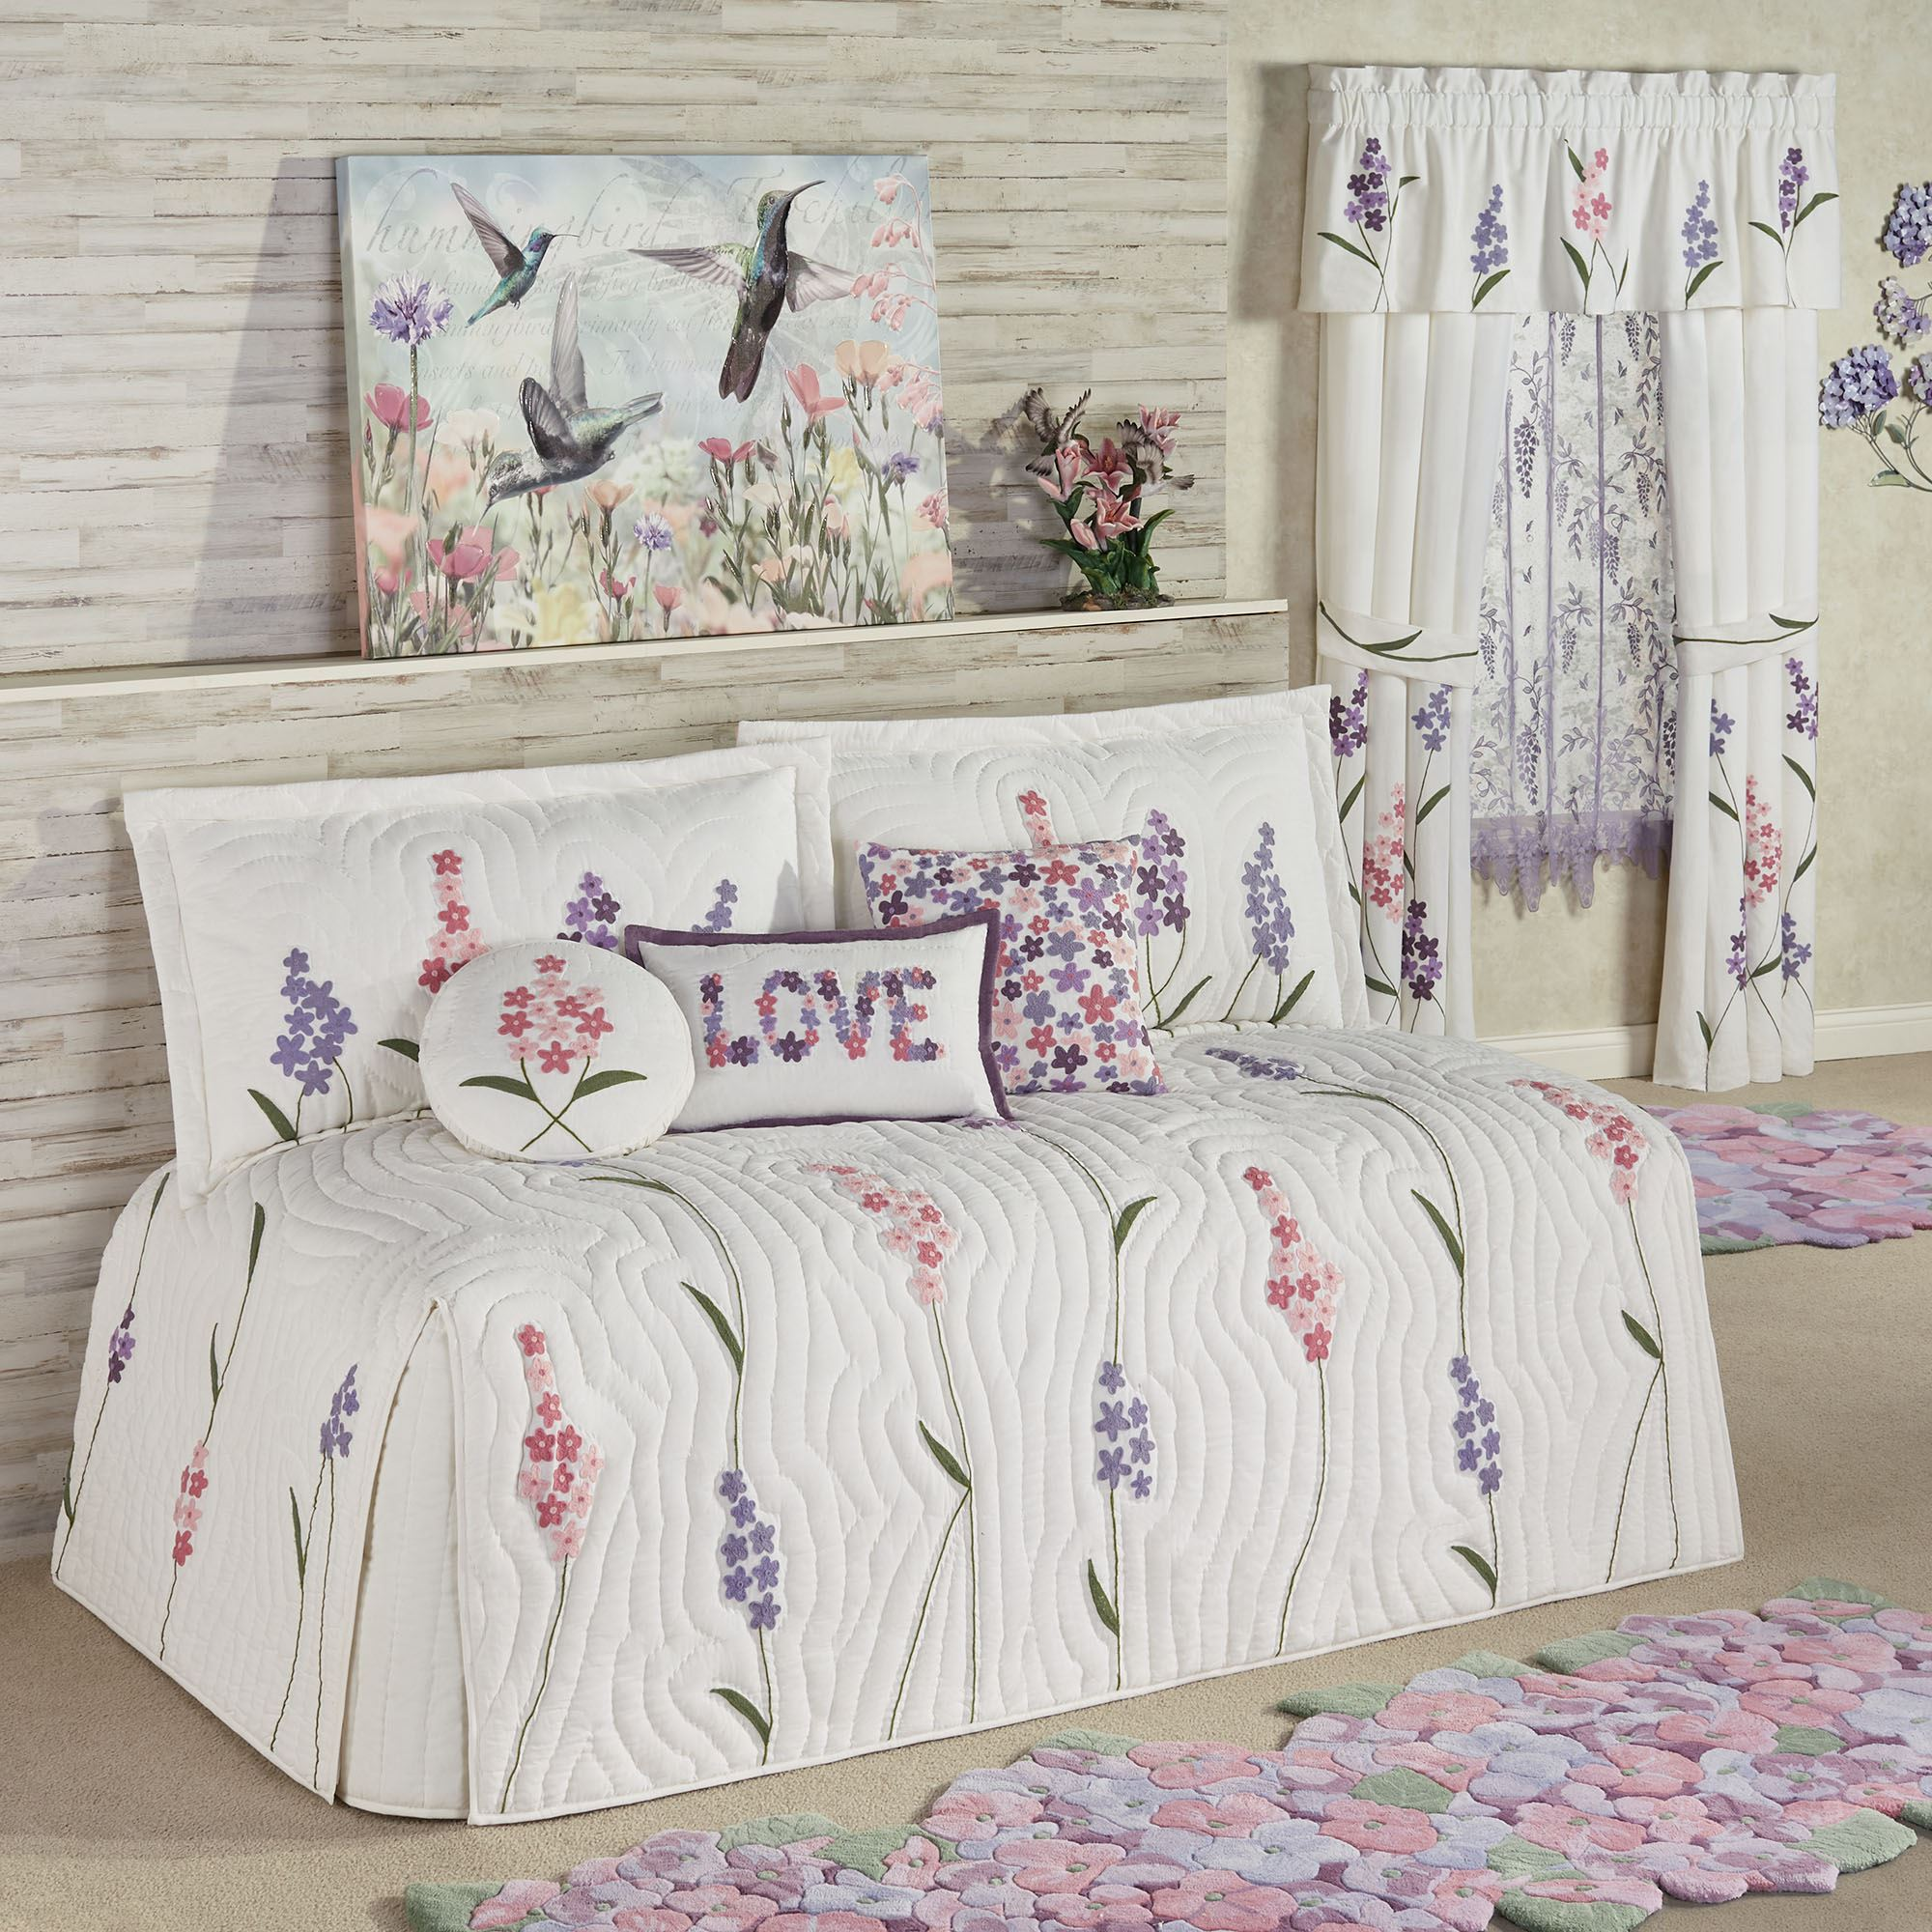 - Wildflowers Floral Quilted Daybed Bedding Set